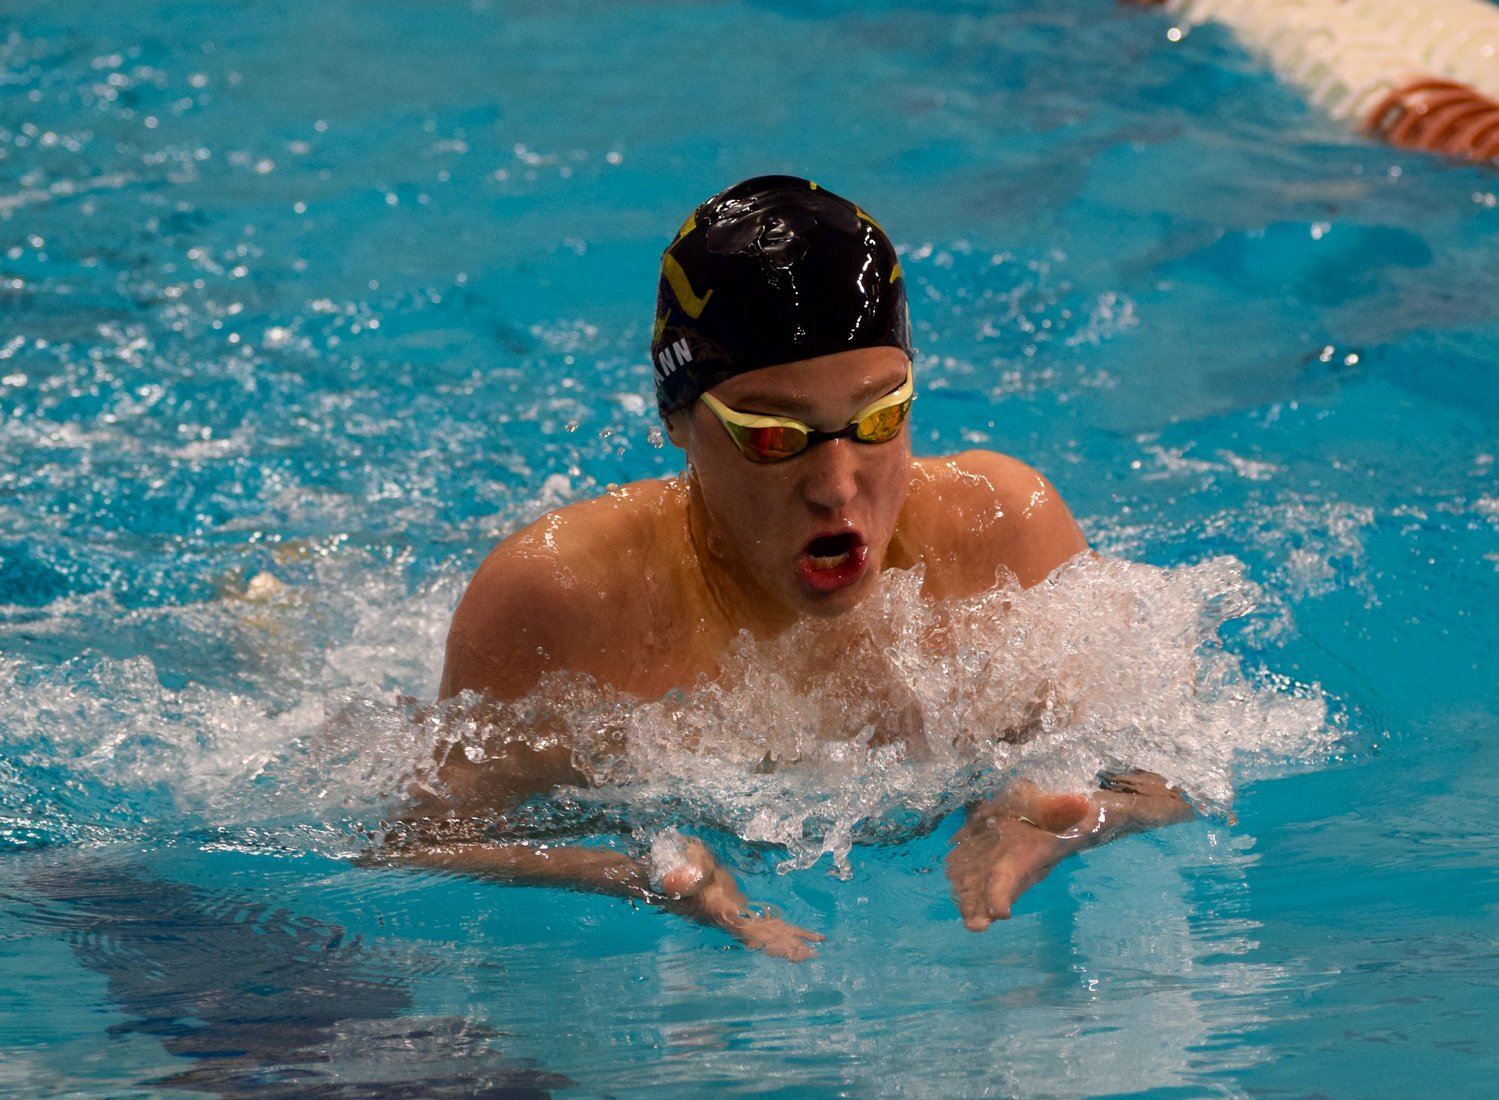 Rouse sophomore Zachary Bann finished 15th overall in the 200-yard individual medley at the UIL State Swimming and Diving Championships on Saturday.